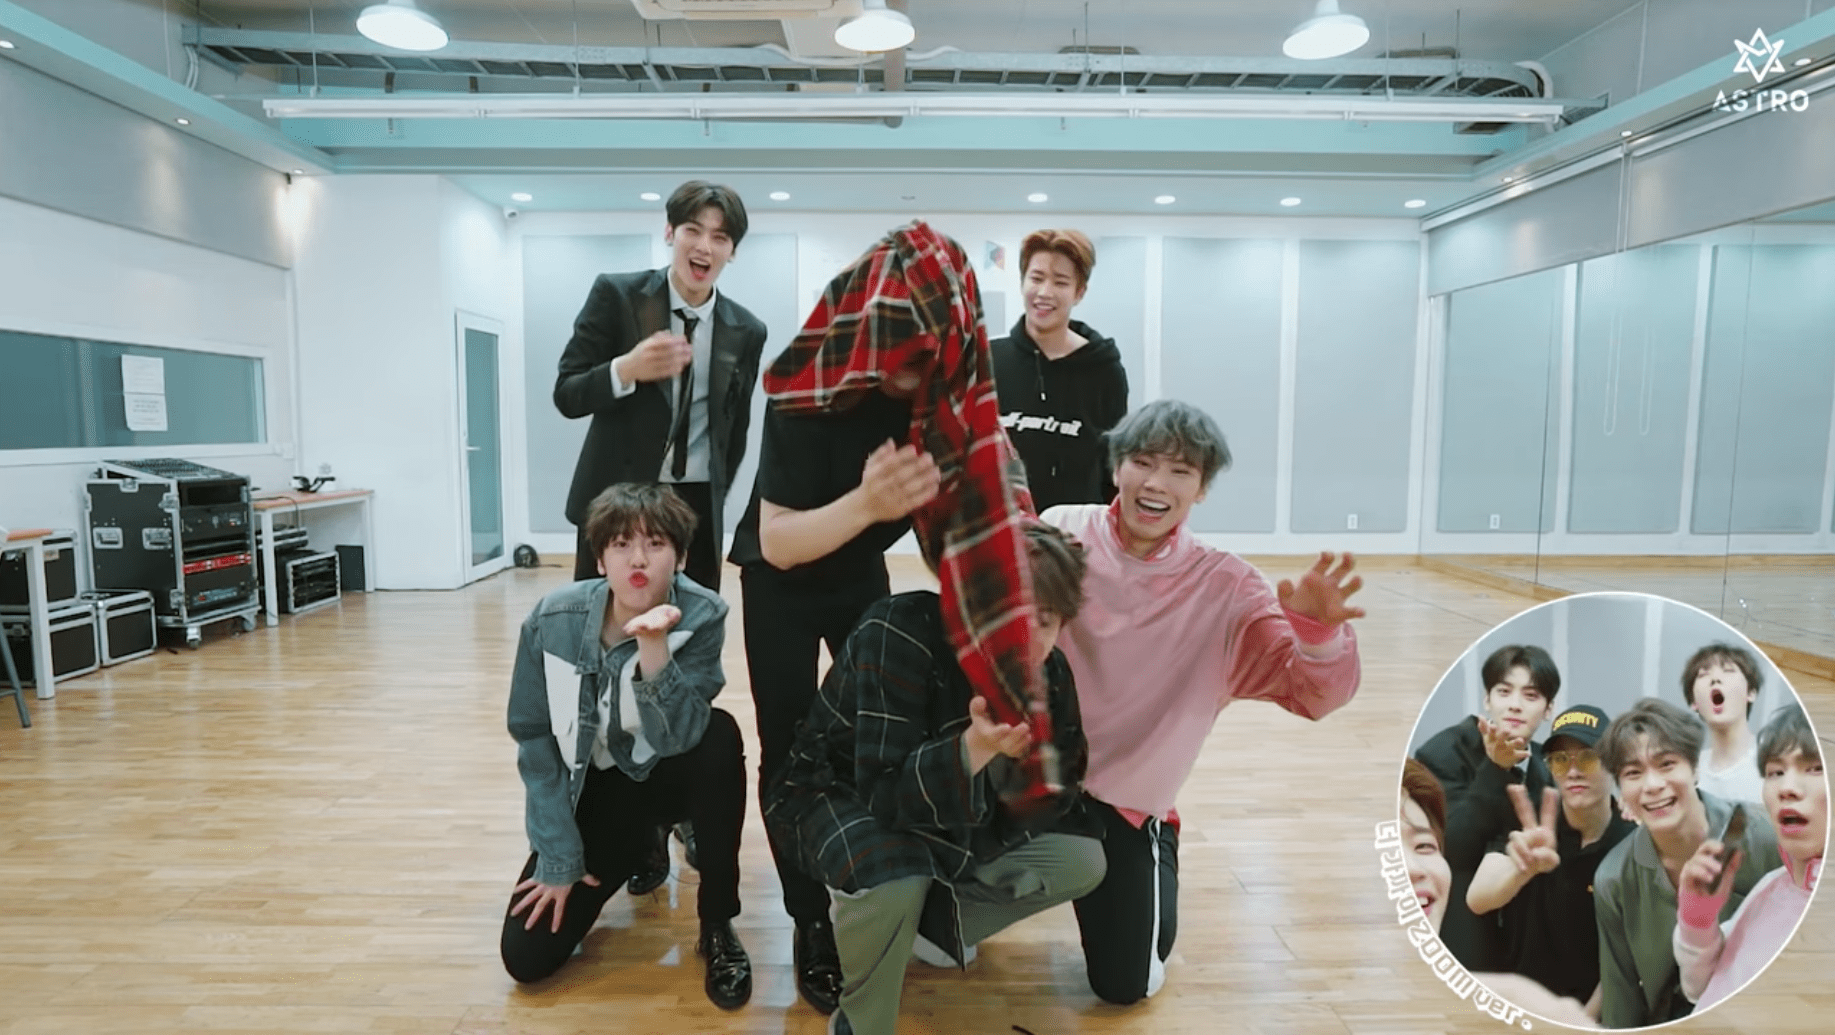 """Watch: ASTRO Drops Special Version Of Dance Practice Video For """"Crazy Sexy Cool"""""""